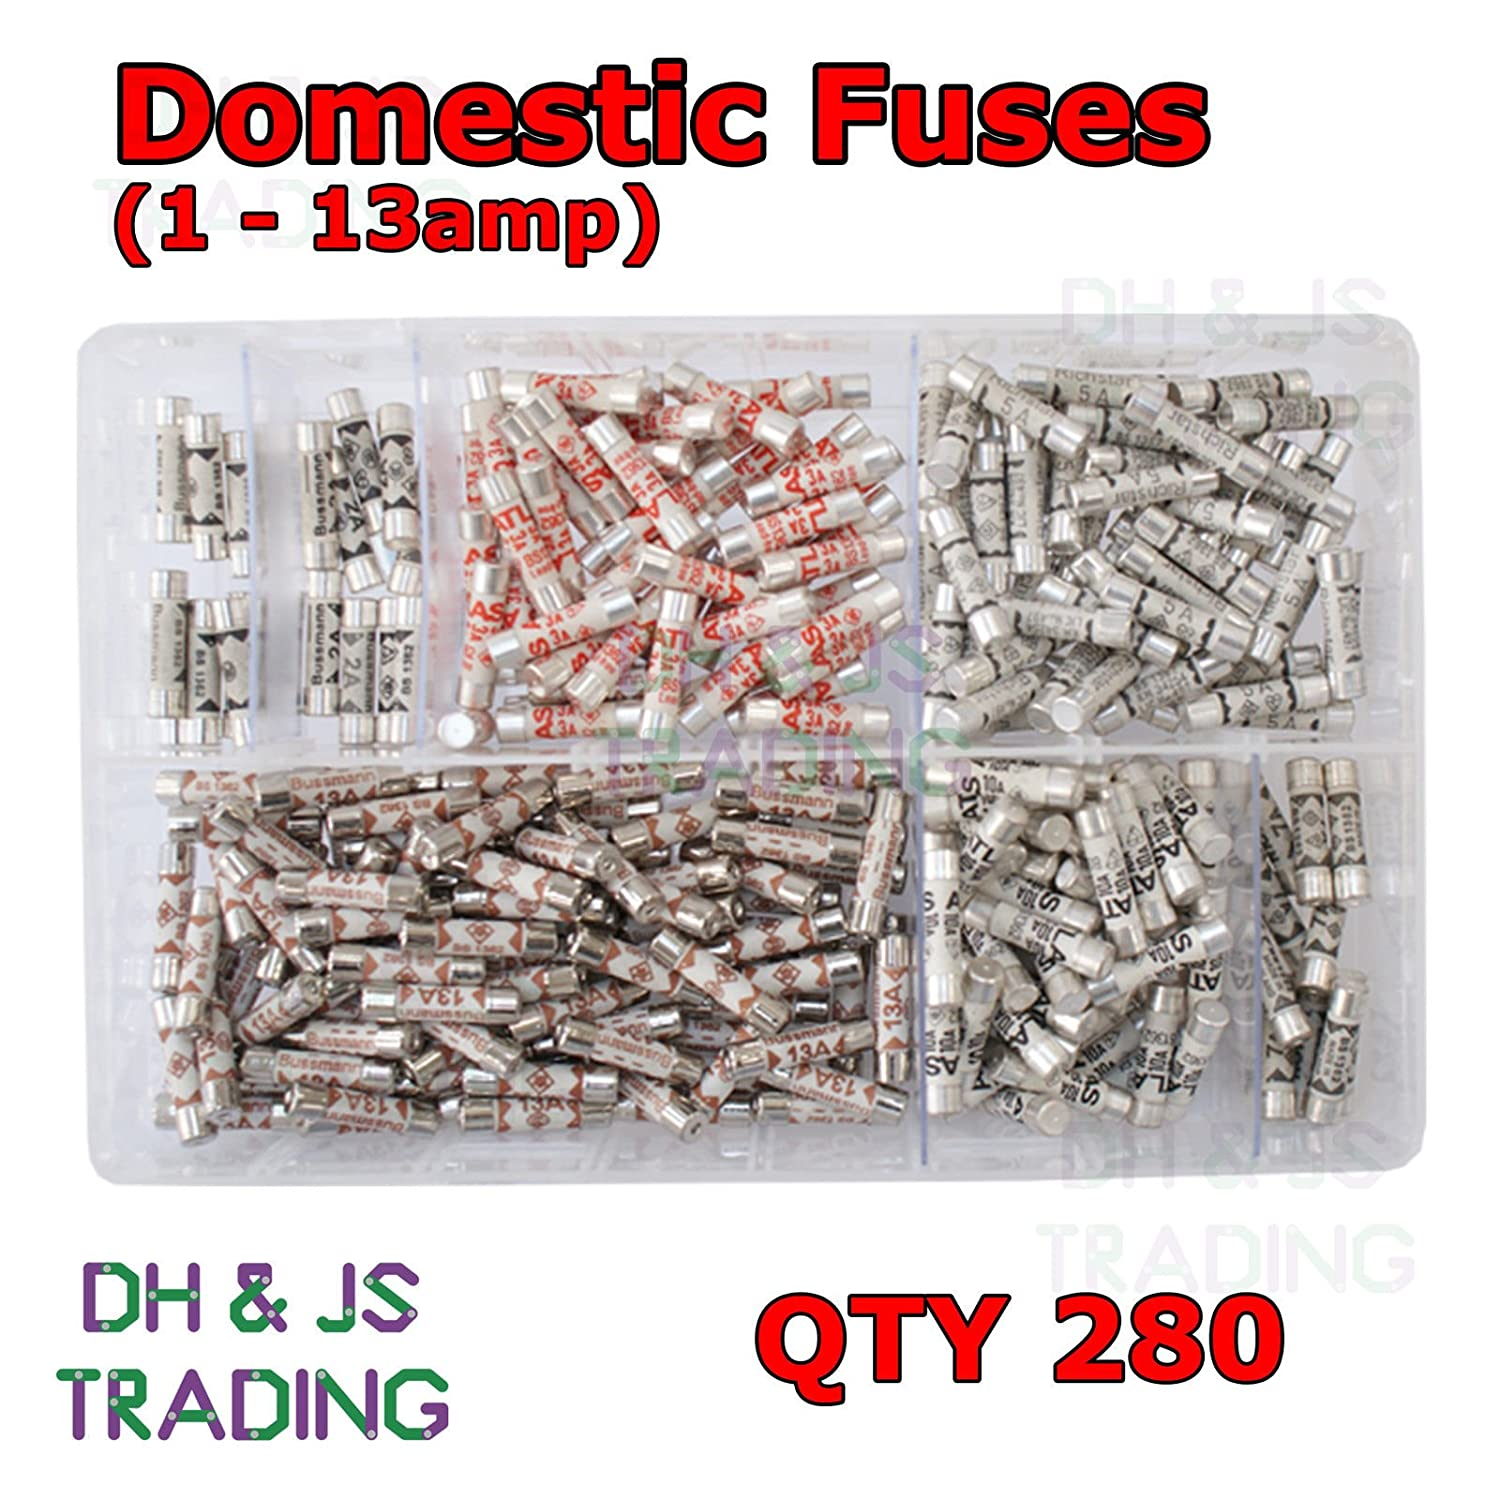 Assorted Box of Domestic Fuses 1 2 3 5 7 10 13 a amp Plug Top Fuse Qty 280 DH & JS Trading